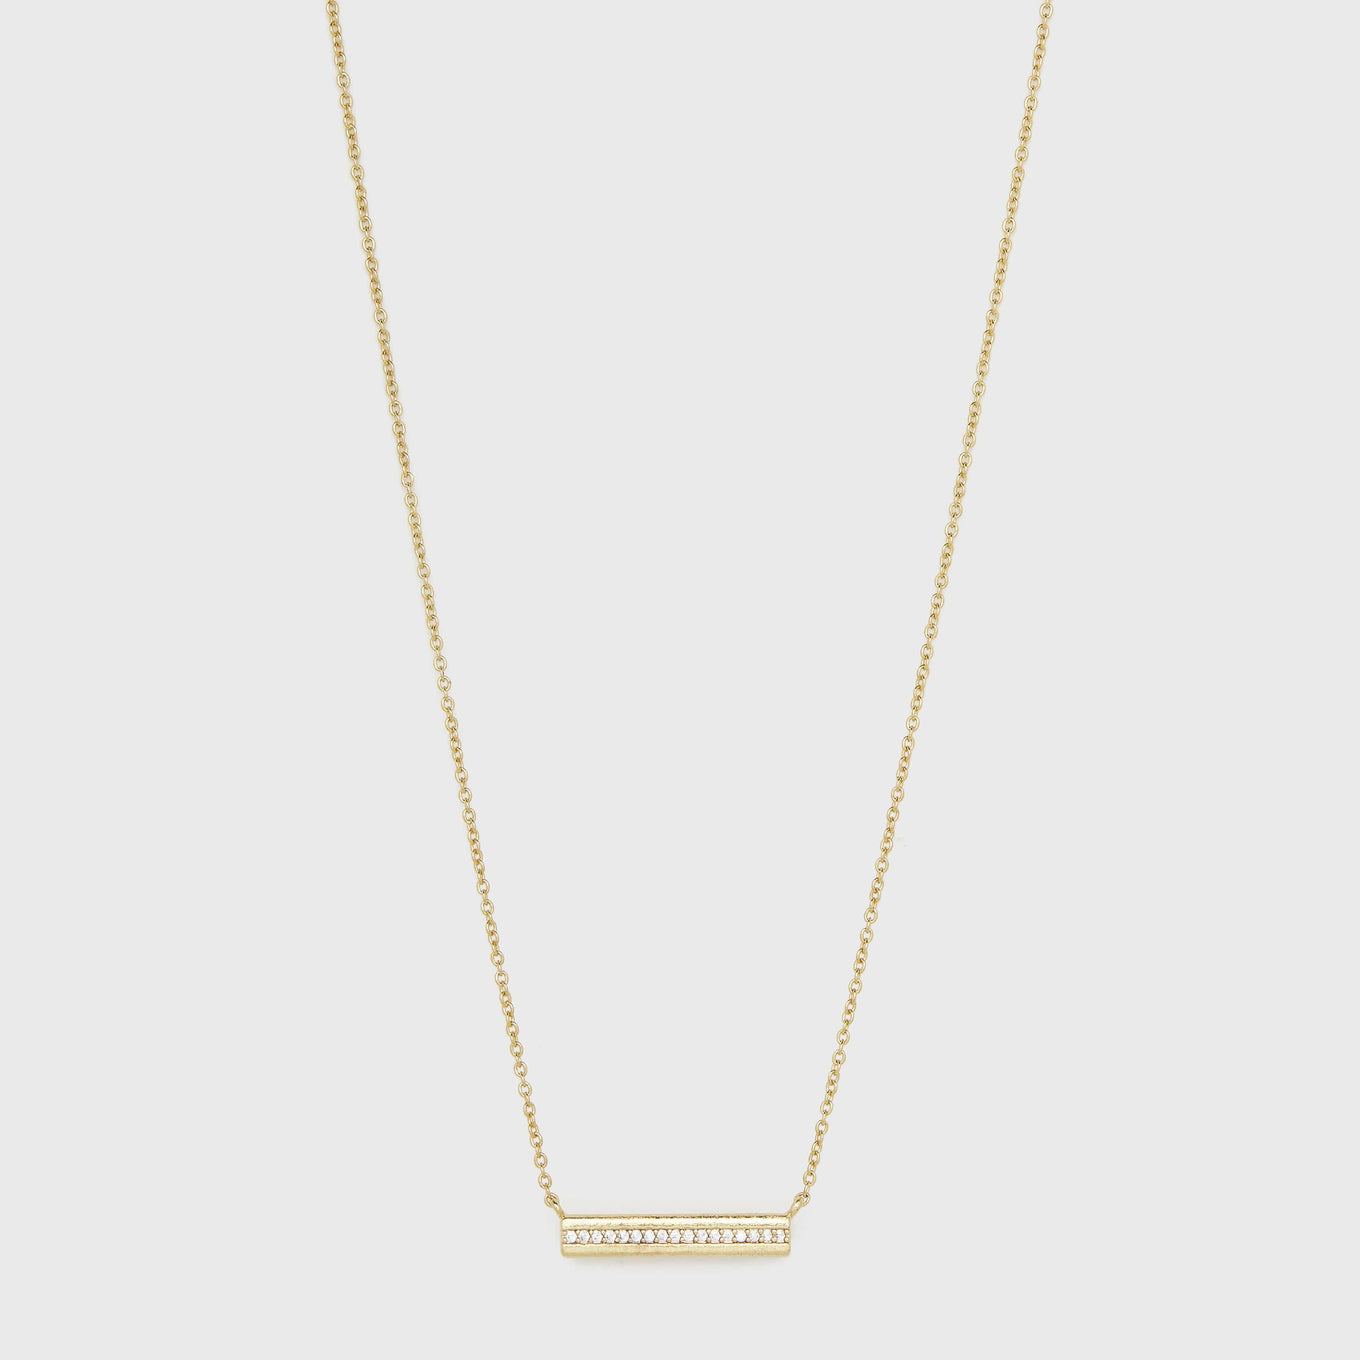 Gorjana Jewelry Gold Bar Necklace, Nia Shimmer Bar Necklace